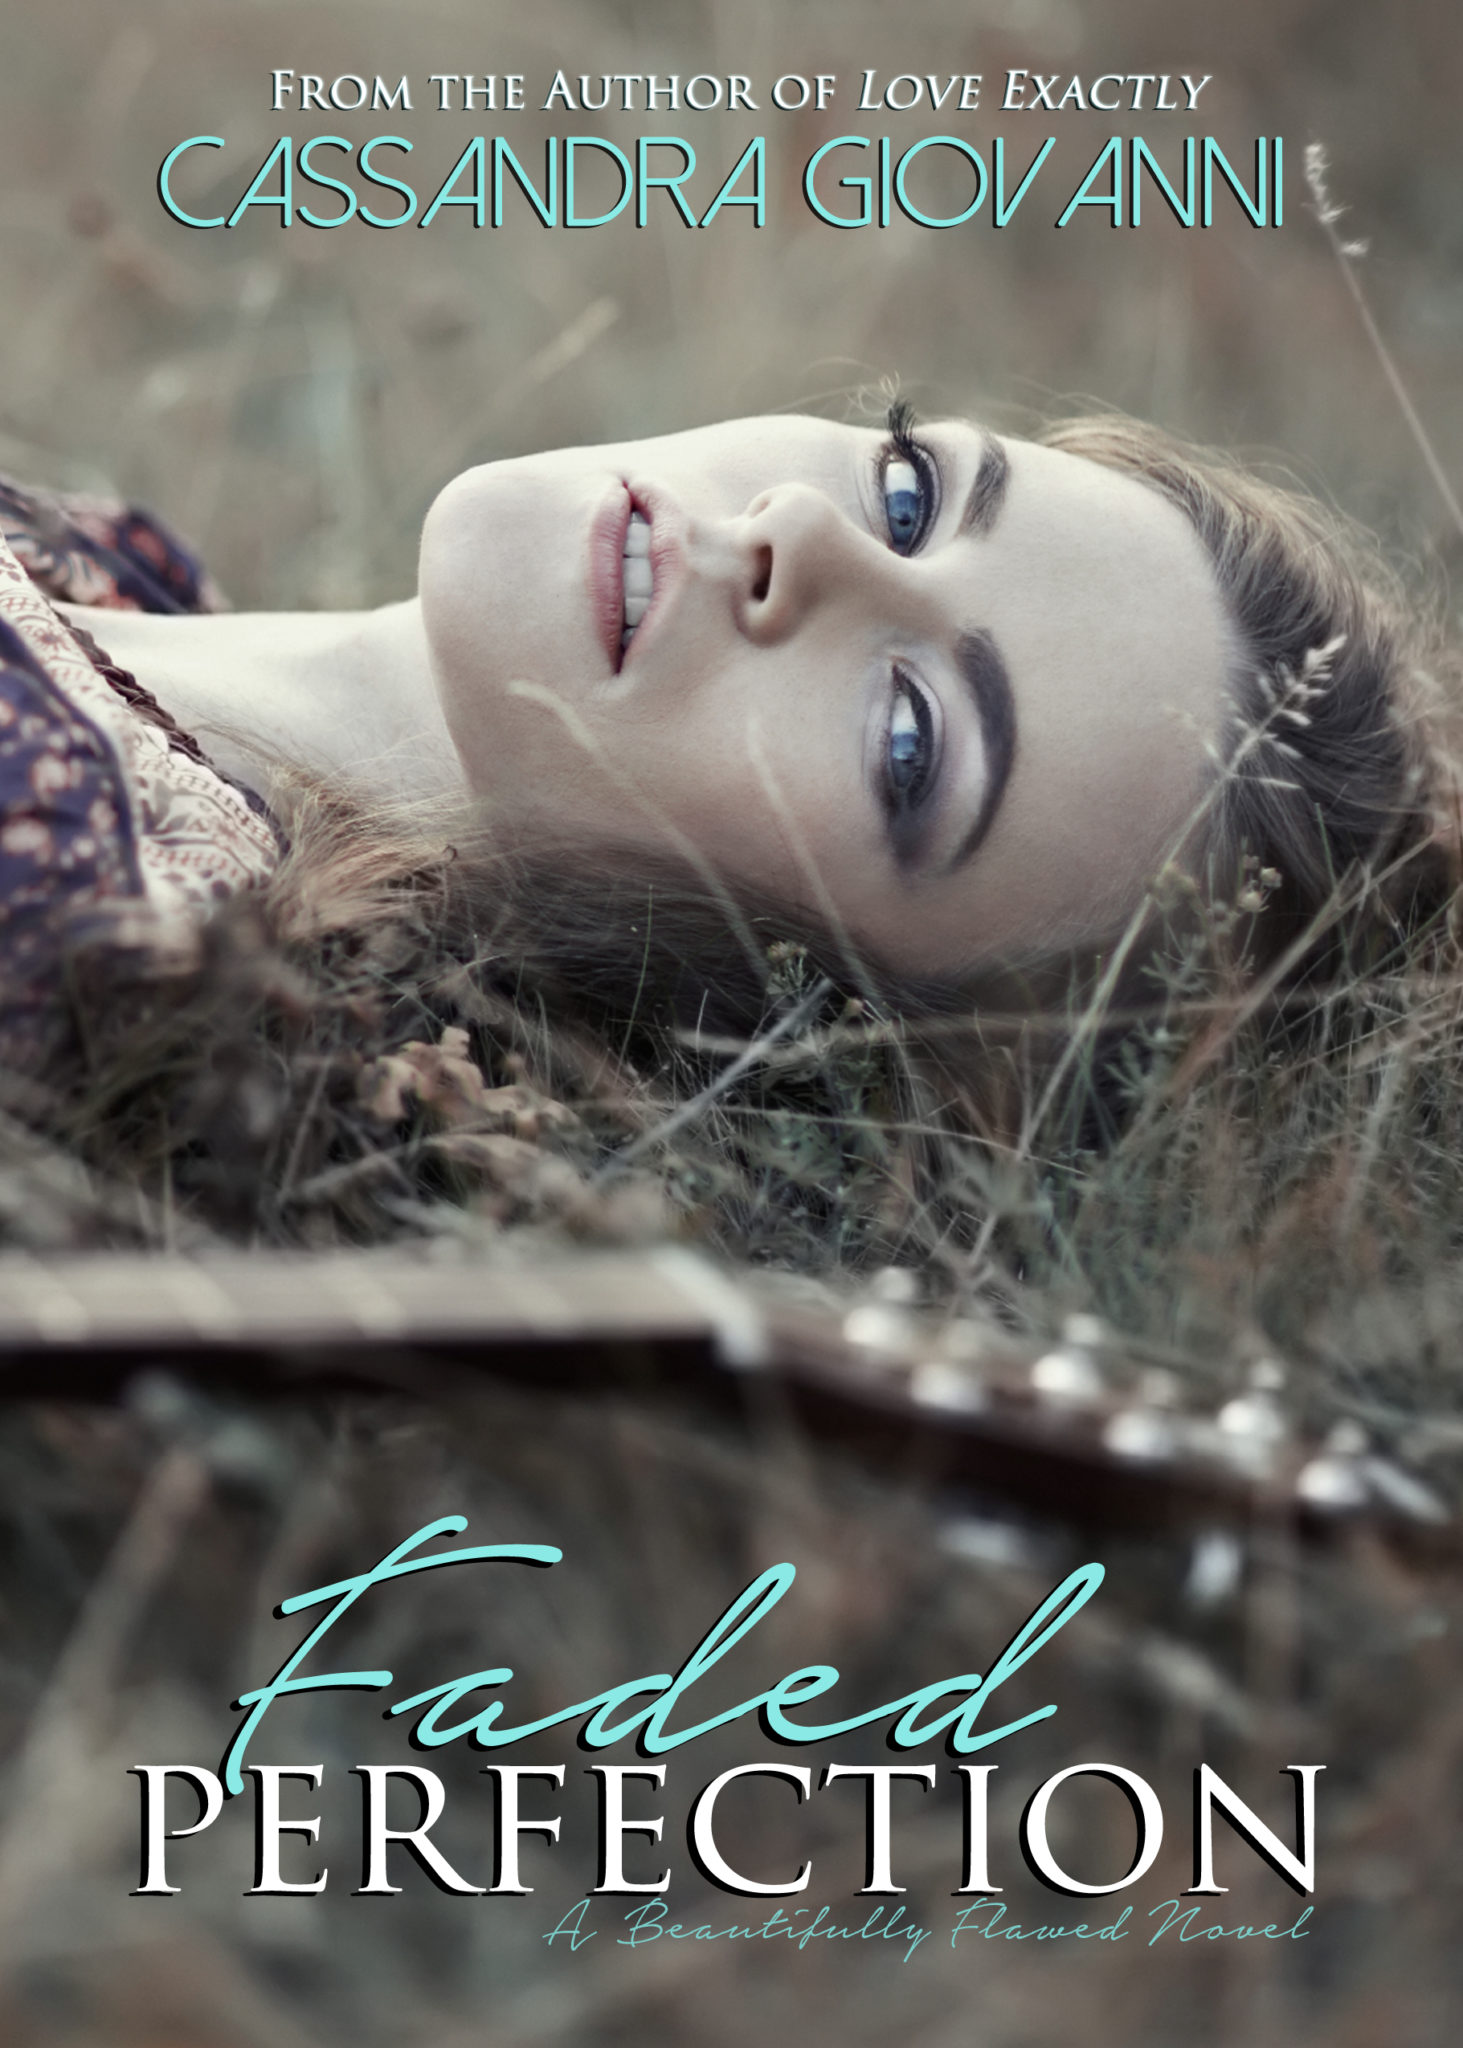 Blog Tour Review: Faded Perfection